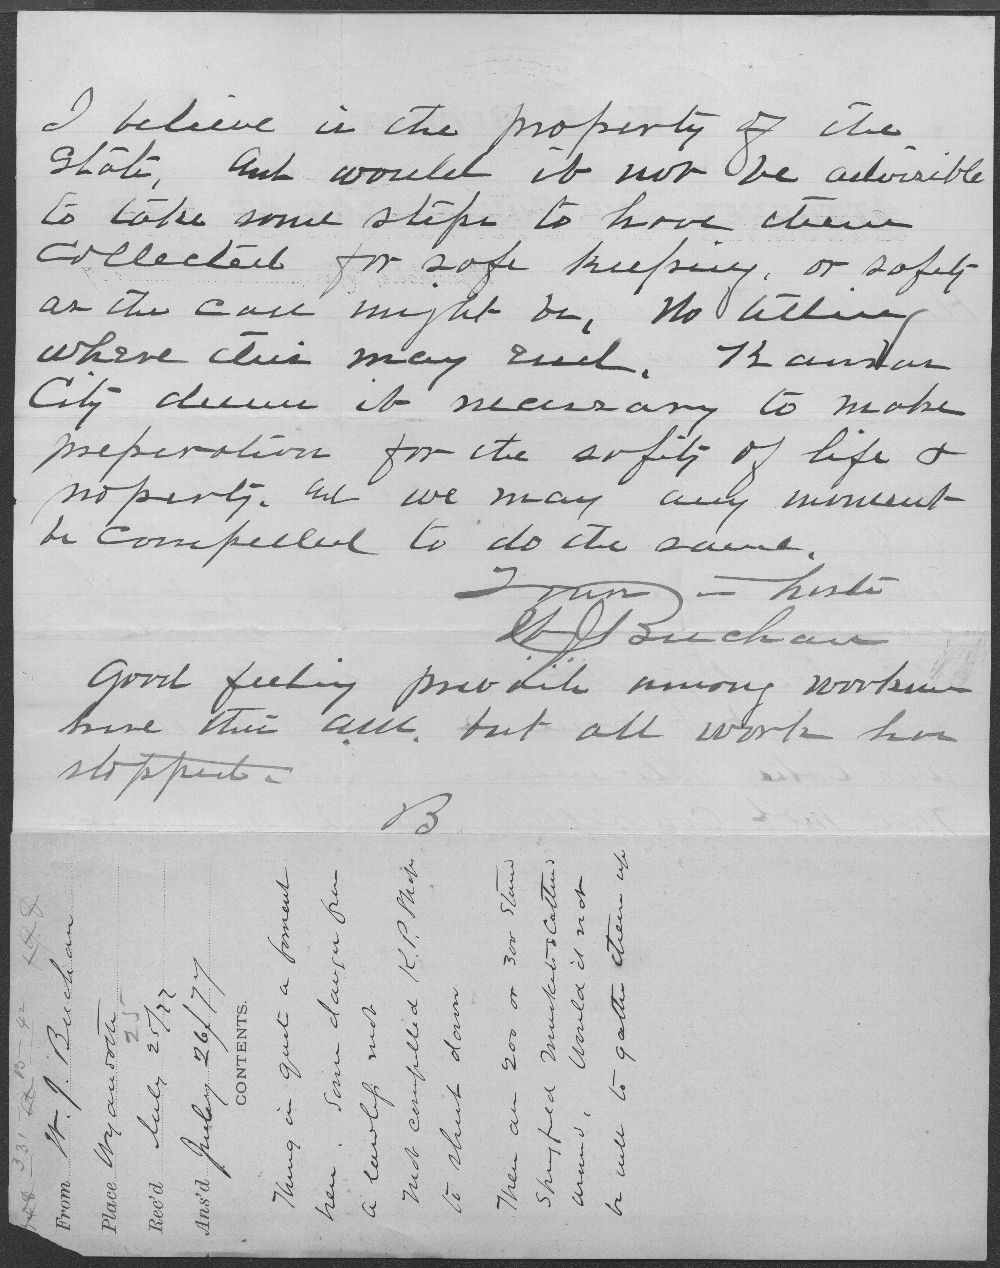 W. J. Buchan to Governor George Anthony - 2